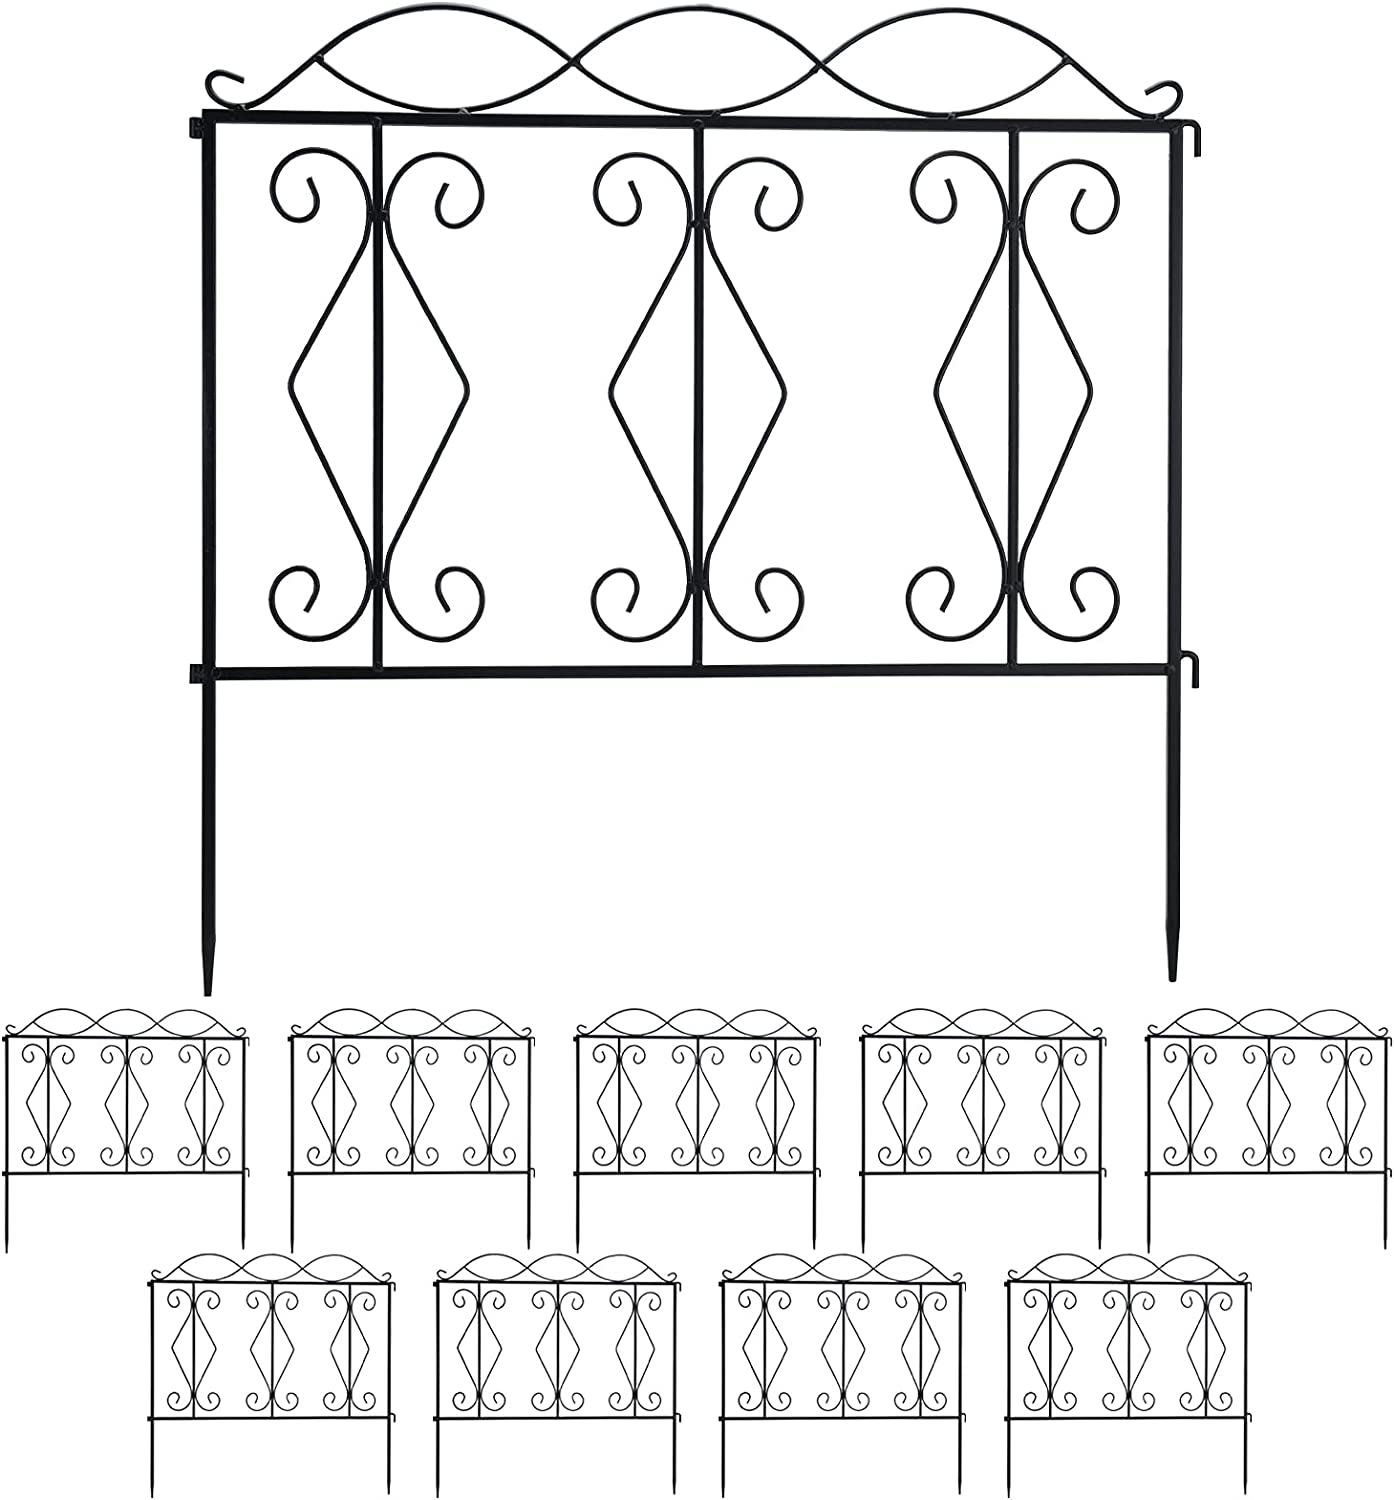 Finderomend 10 Pack Garden Fence Rustproof Metal Wire Fencing Decorative Garden Fencing for Landscape Patio, Pets, Barrier Gate Outdoor Black (24inch x 24inch,20FT Total) (style2)